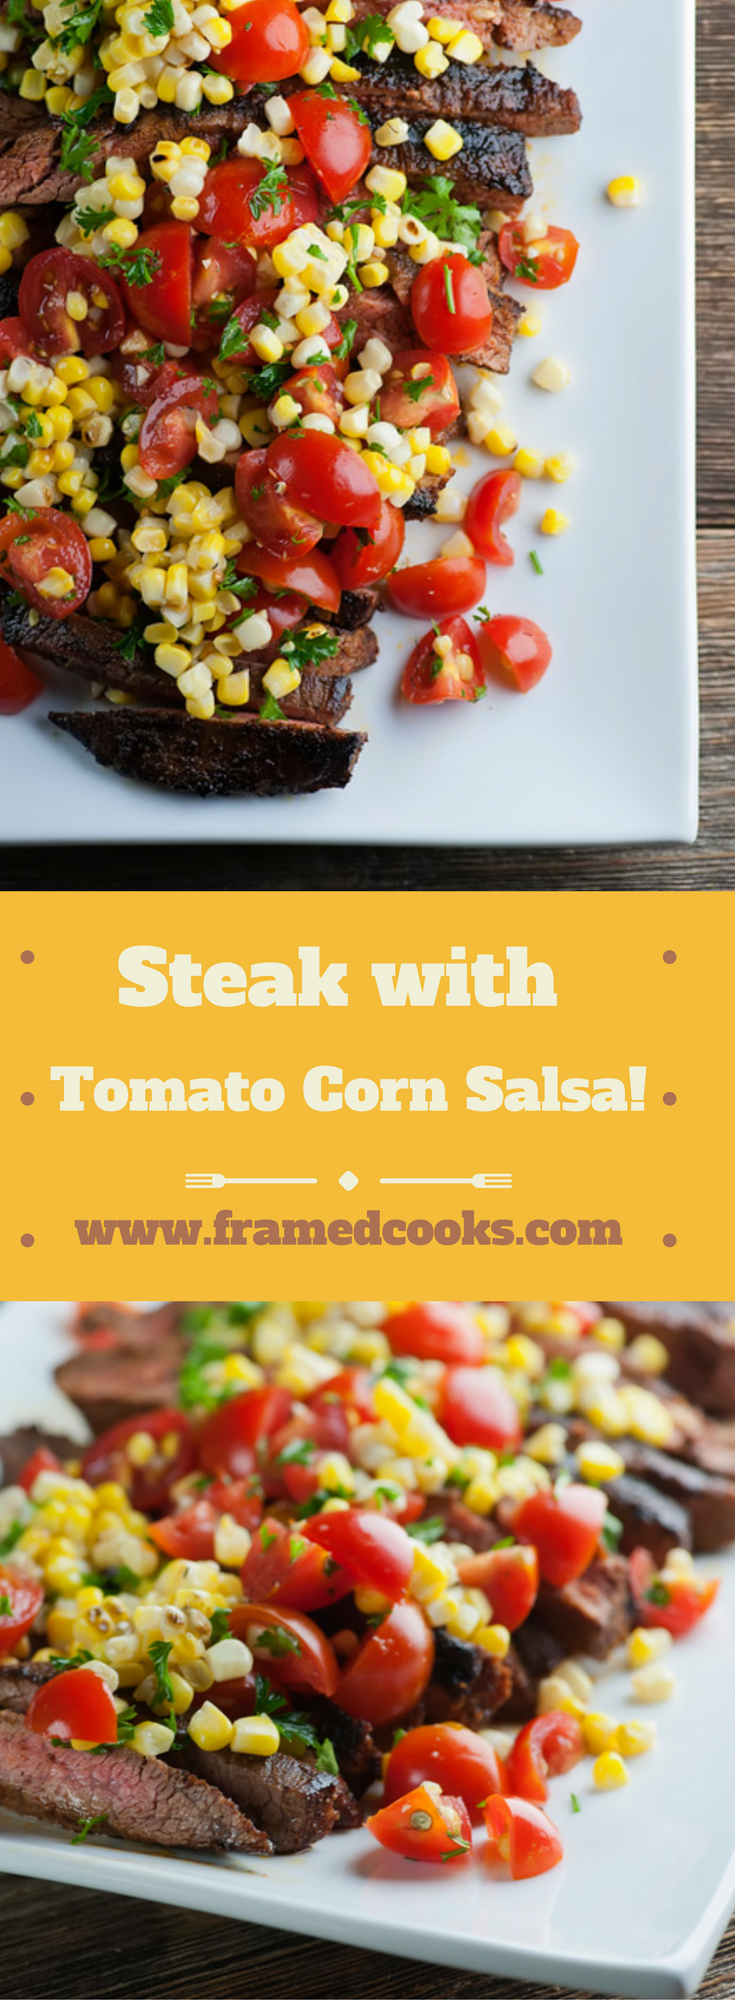 This recipe for spicy steak with corn salsa will add some zing to your next grilled supper! Fresh tomatoes and summer corn are all the veggies you need.